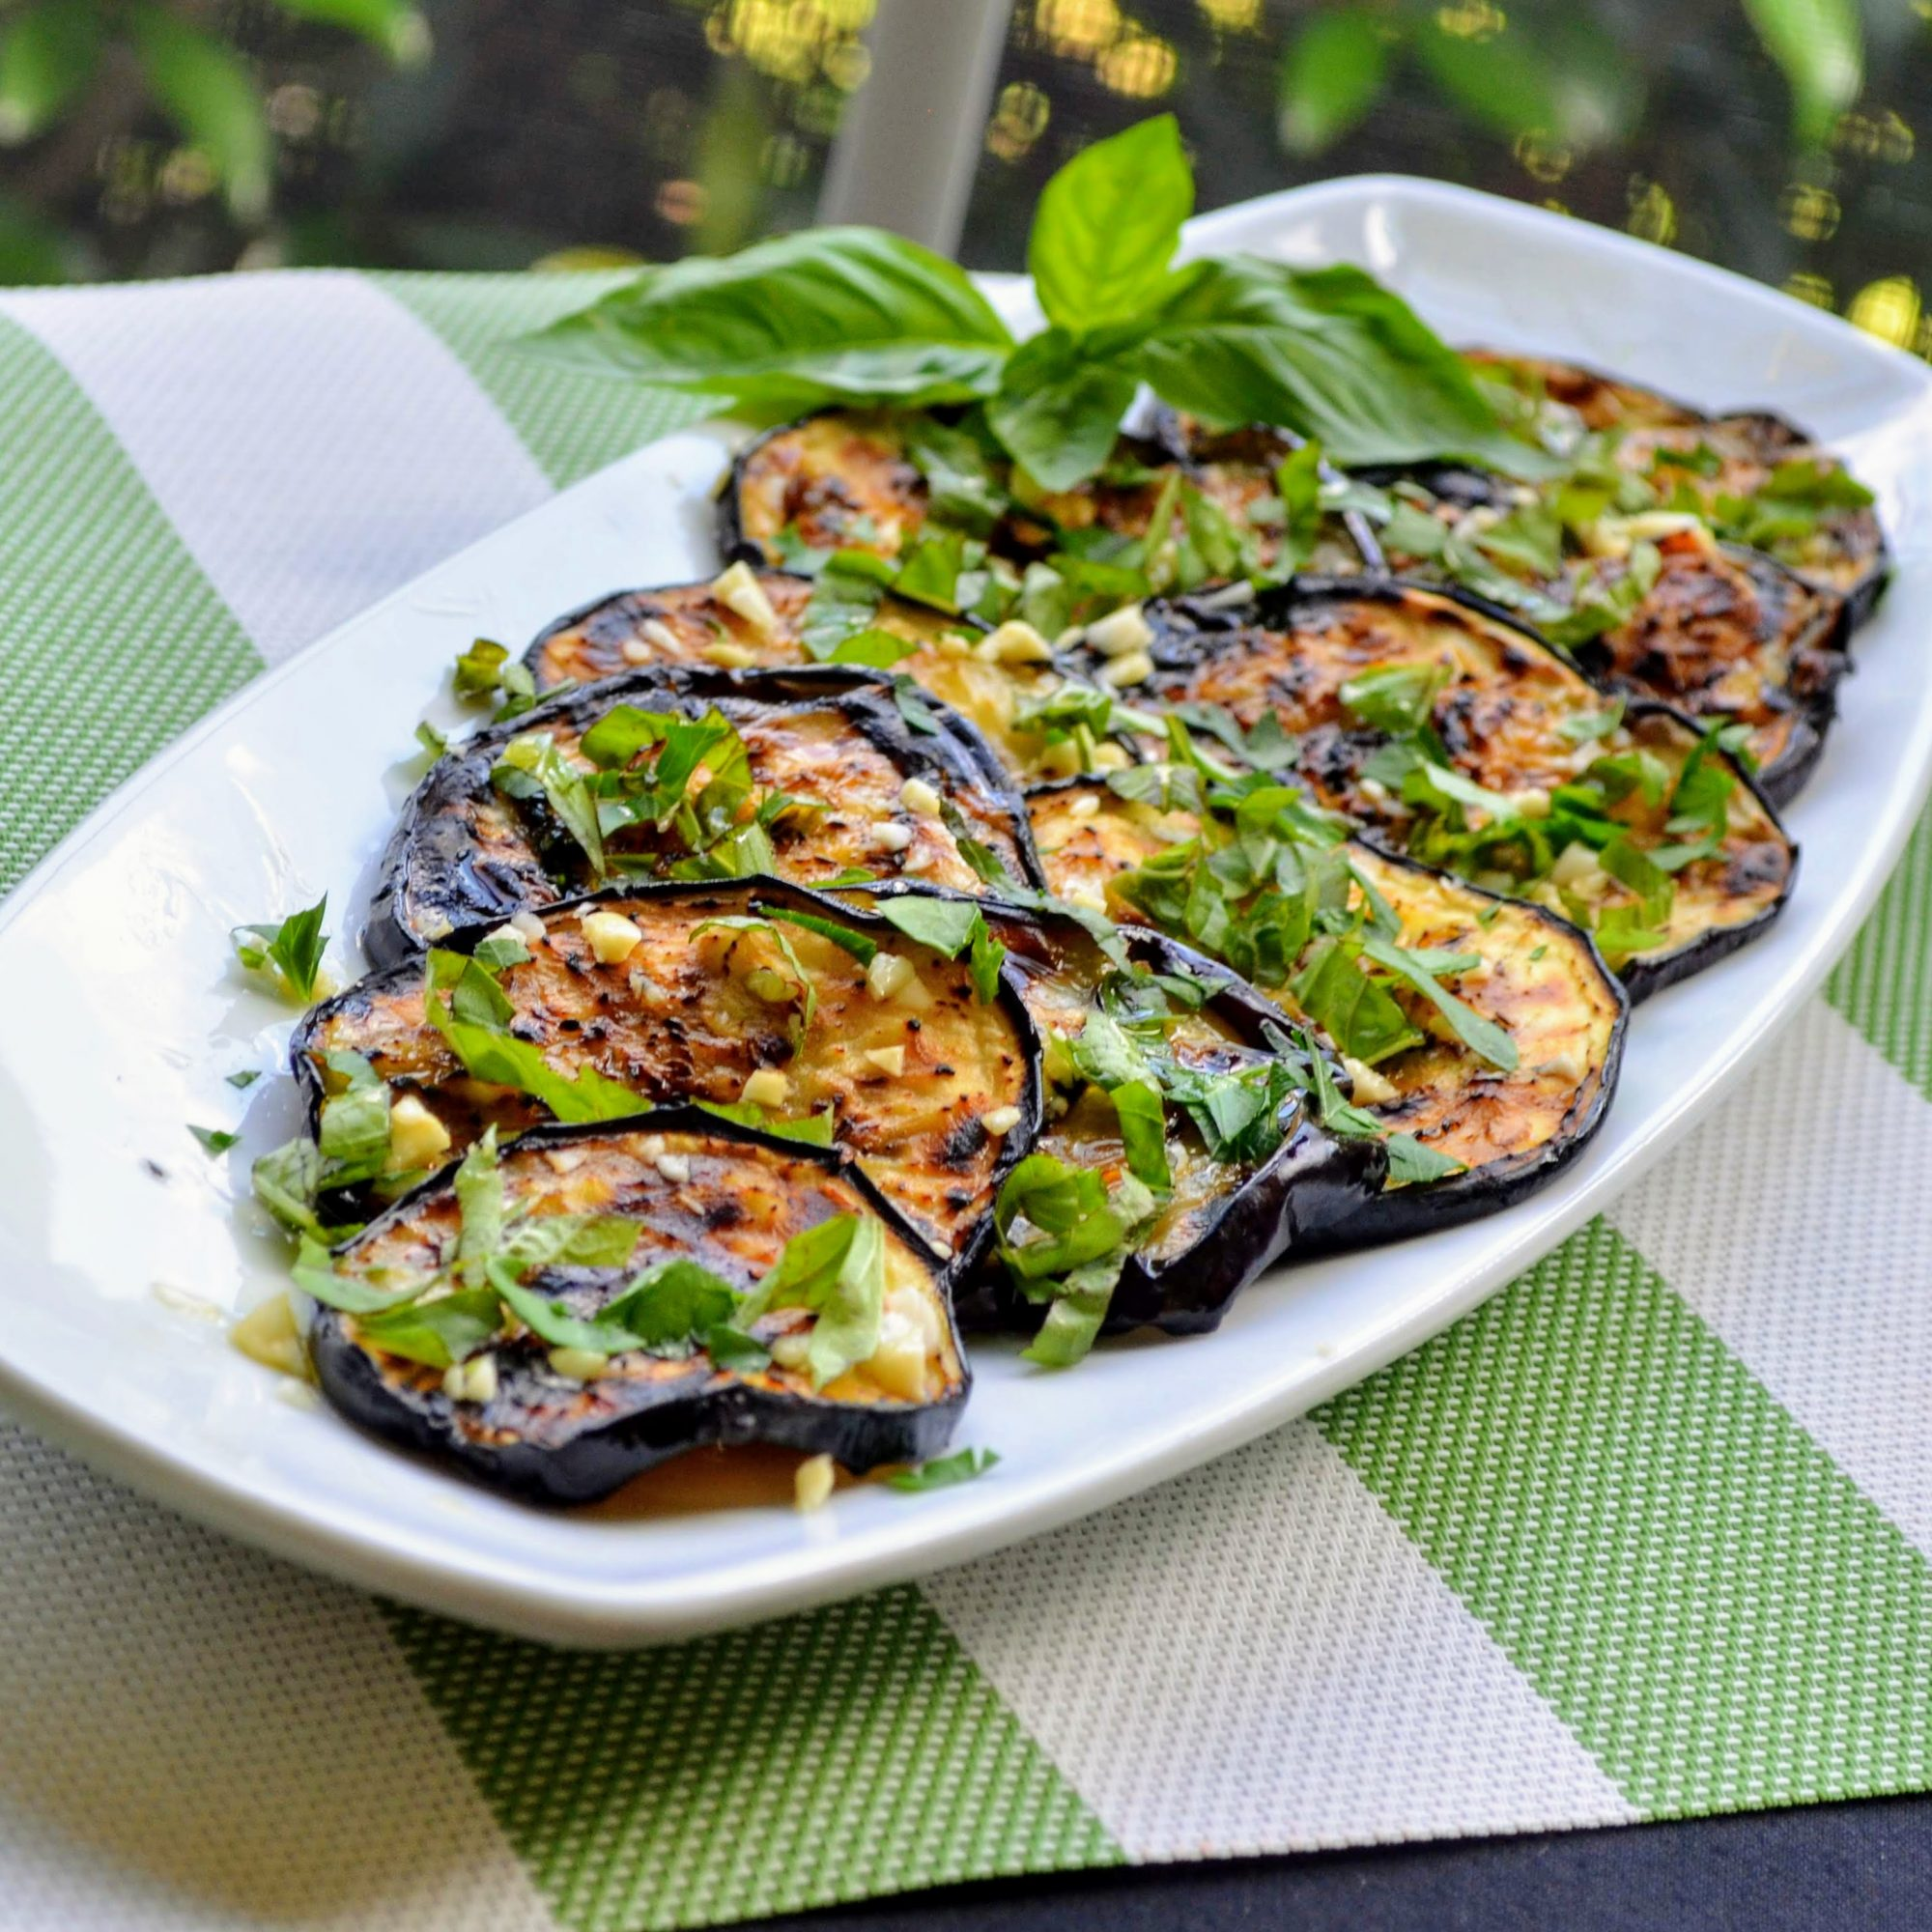 Italian Grilled Eggplant with Basil and Parsley